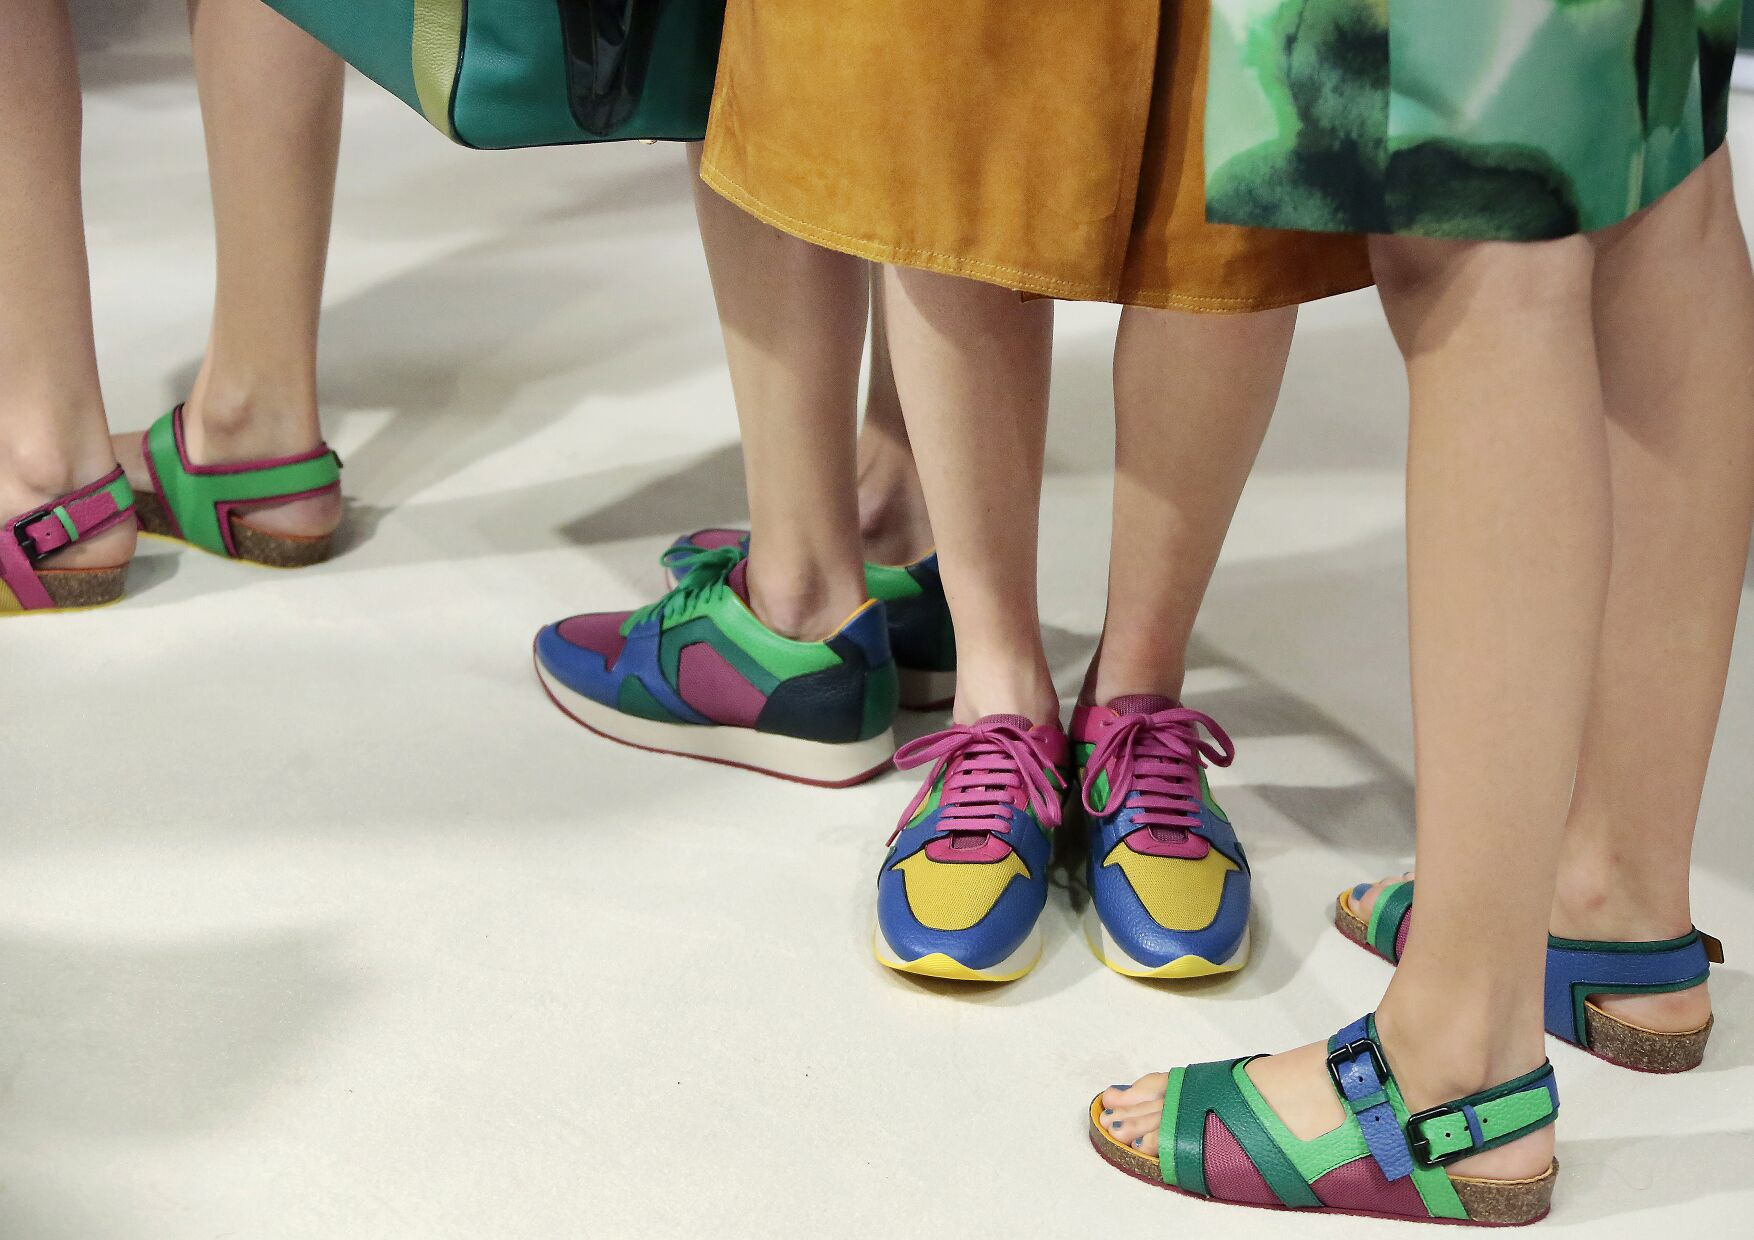 Backstage Burberry Prorsum Shoes